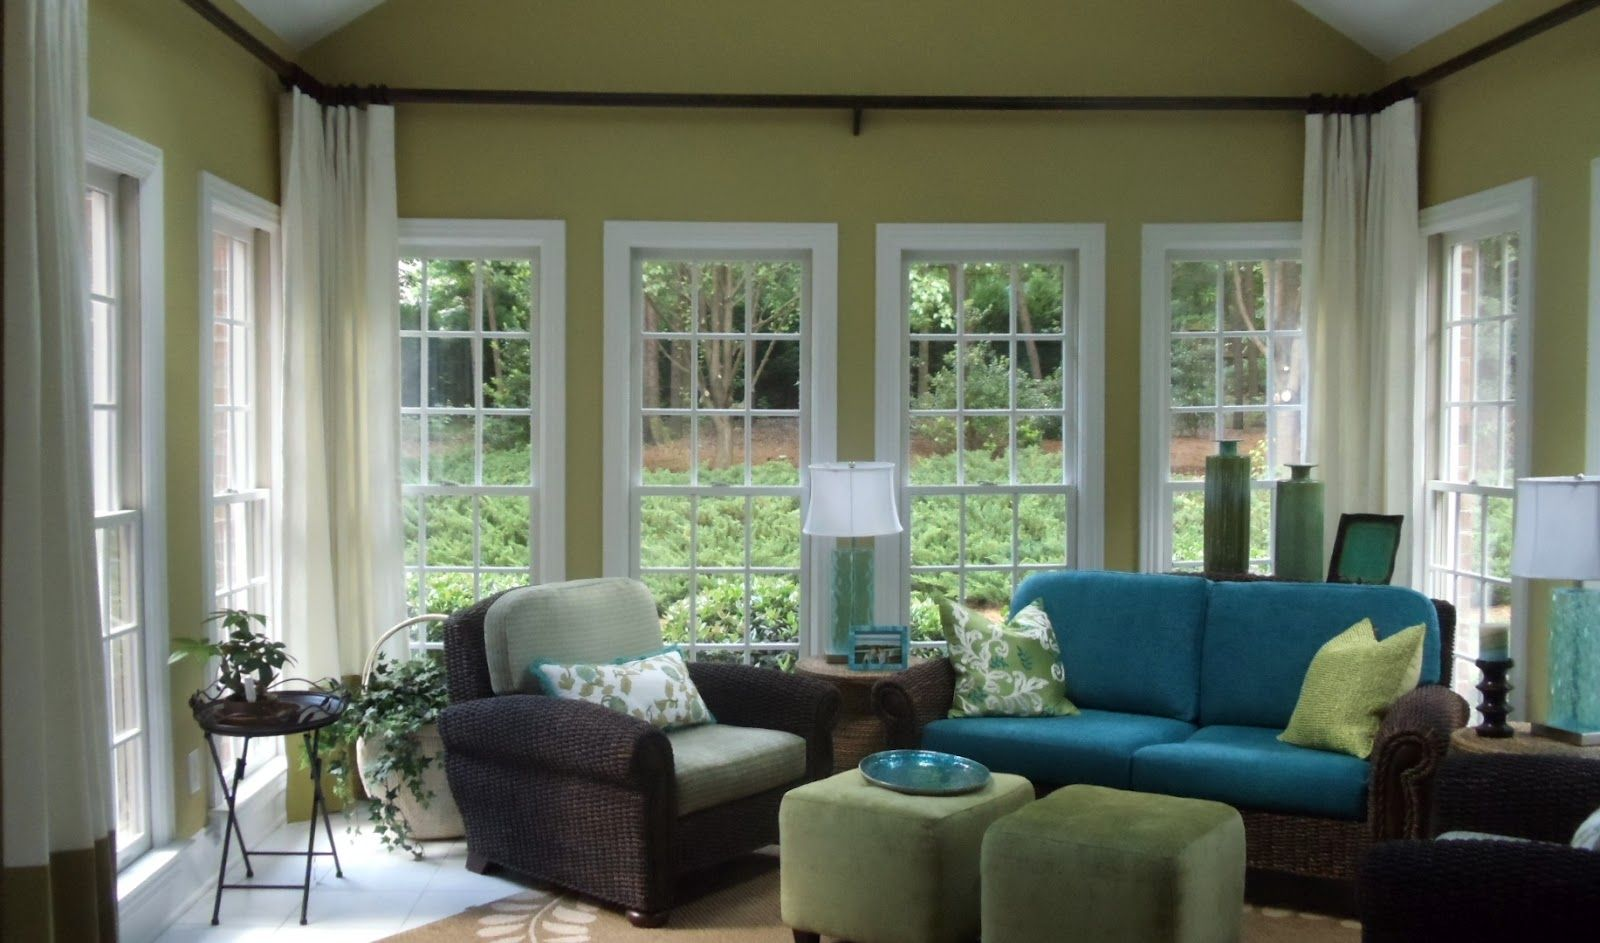 Sunroom Makeover On My List Love The Higher Curtain Interior Design Ideas Window Treatments Remodeling Fabrics Greensboro High Point Nc How To Add